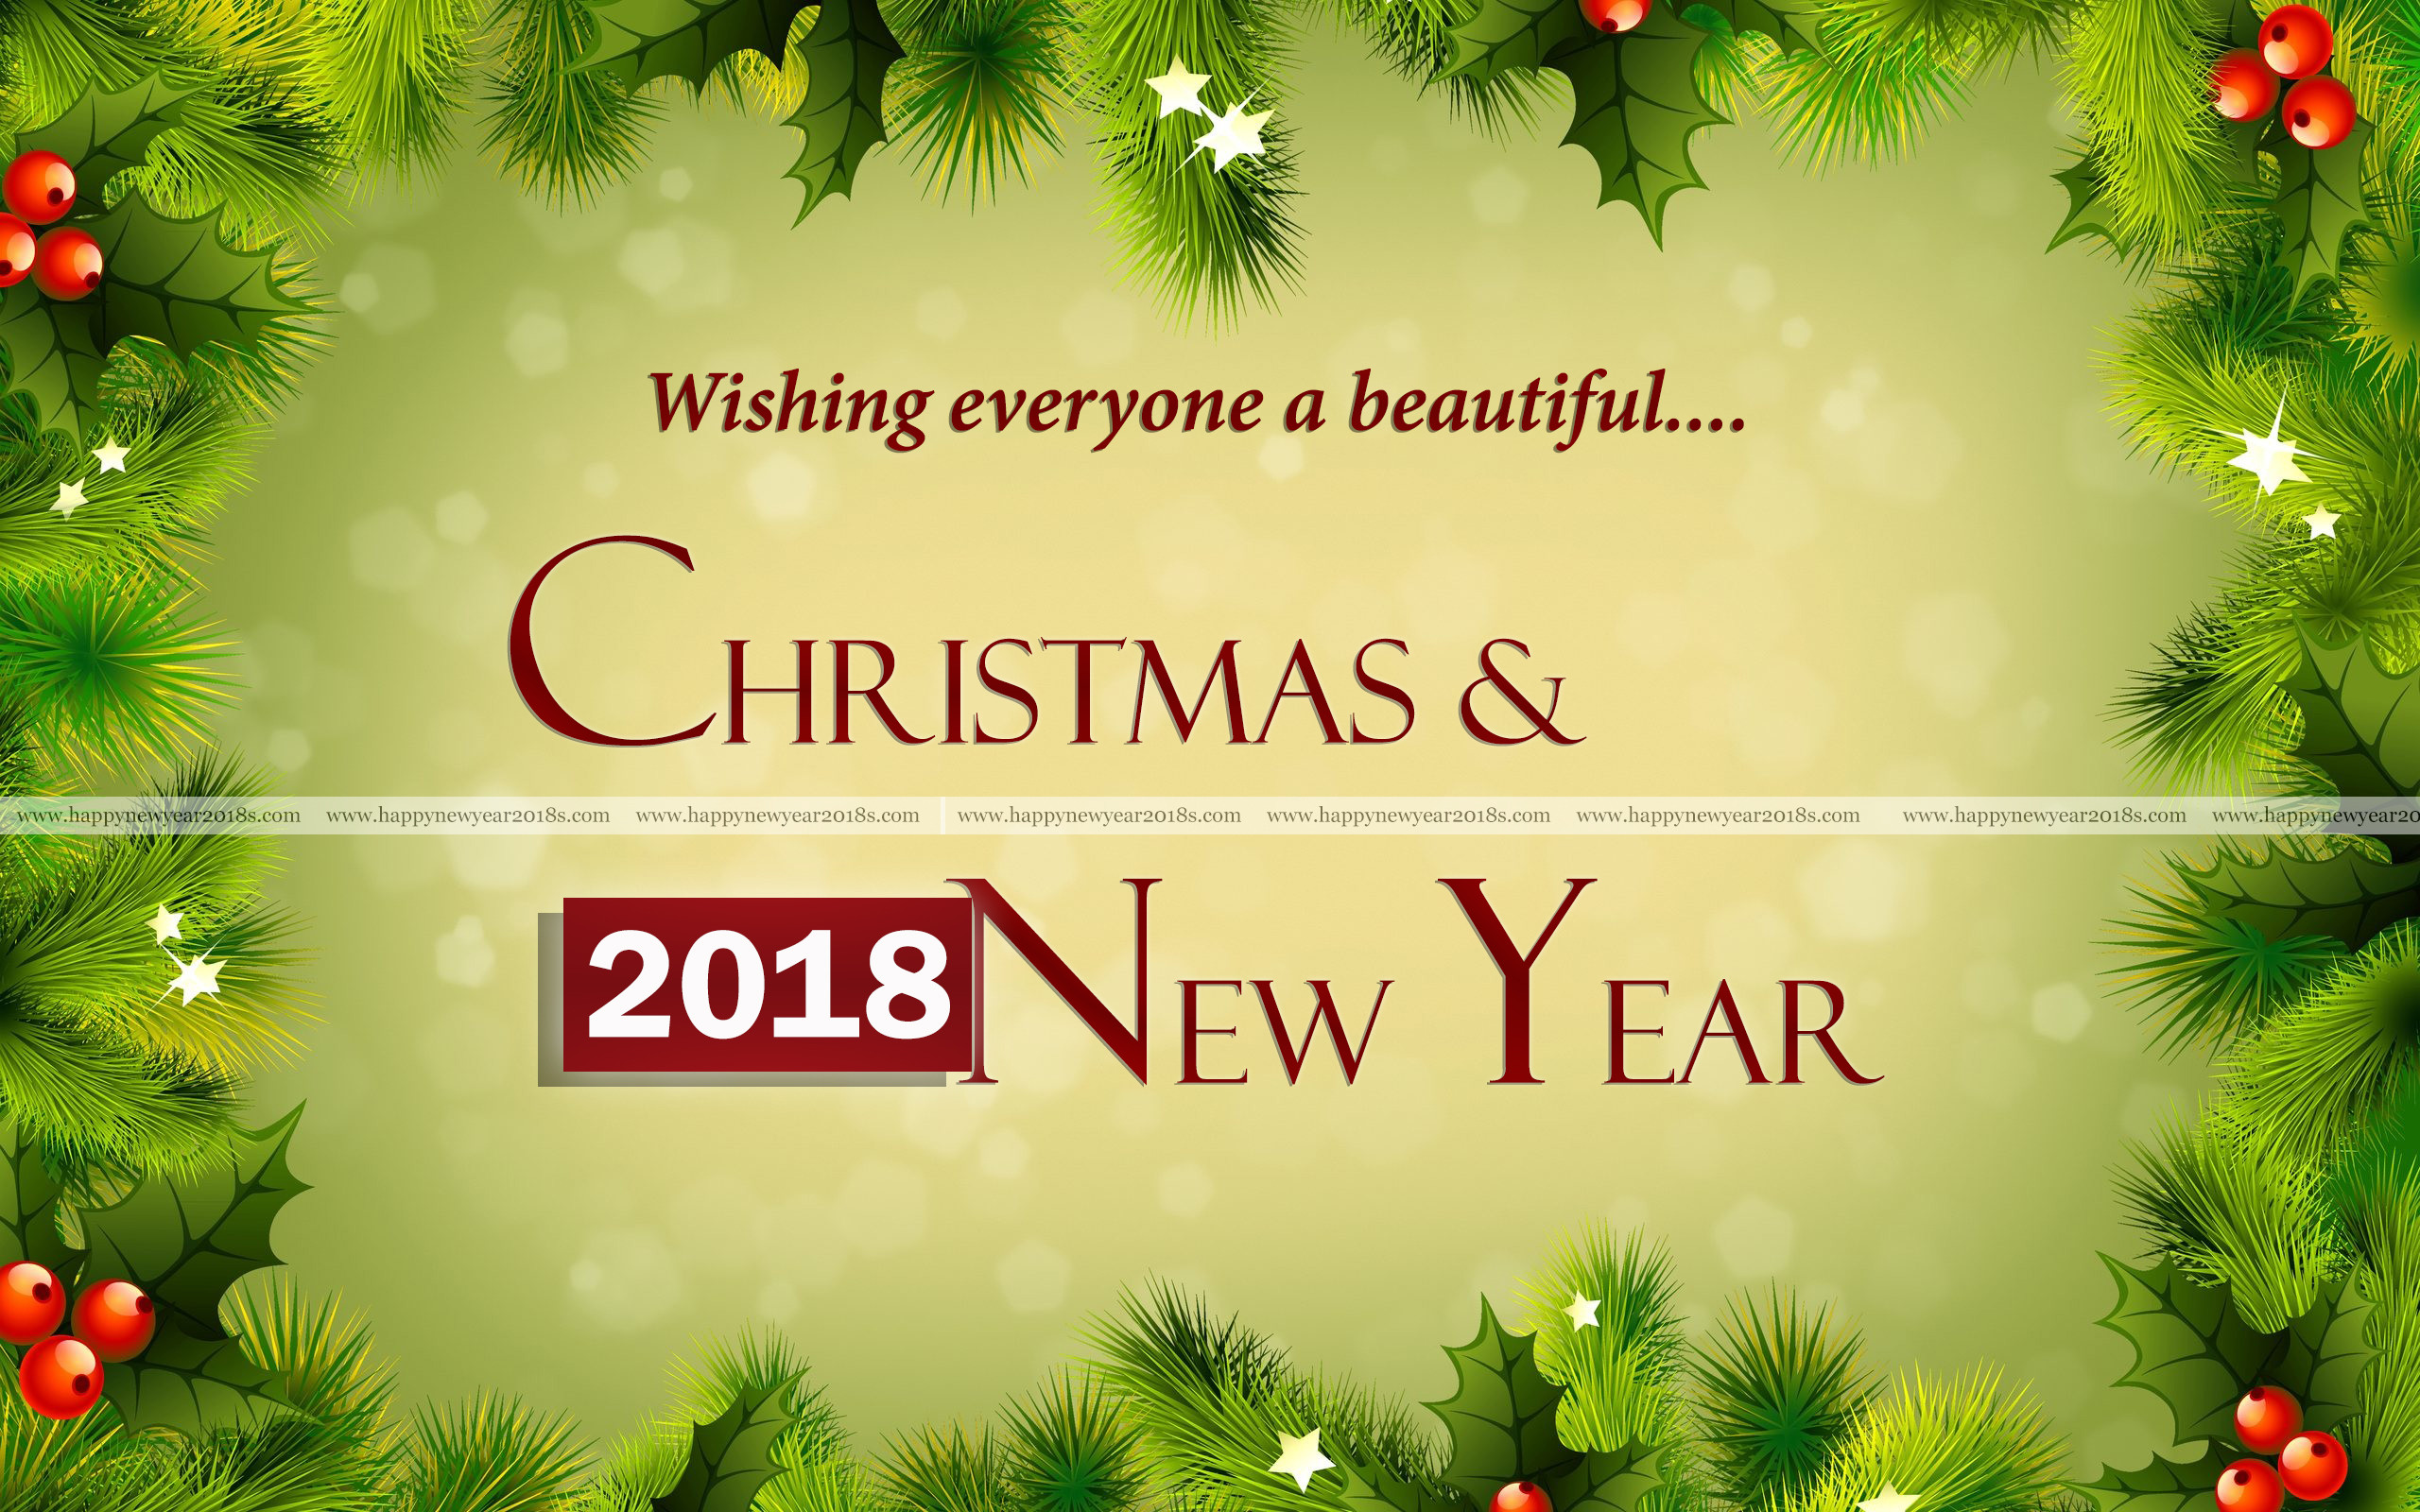 merry christmas day wallpaper 2018 merry christmas 2018 wallpaper 183 wallpapertag